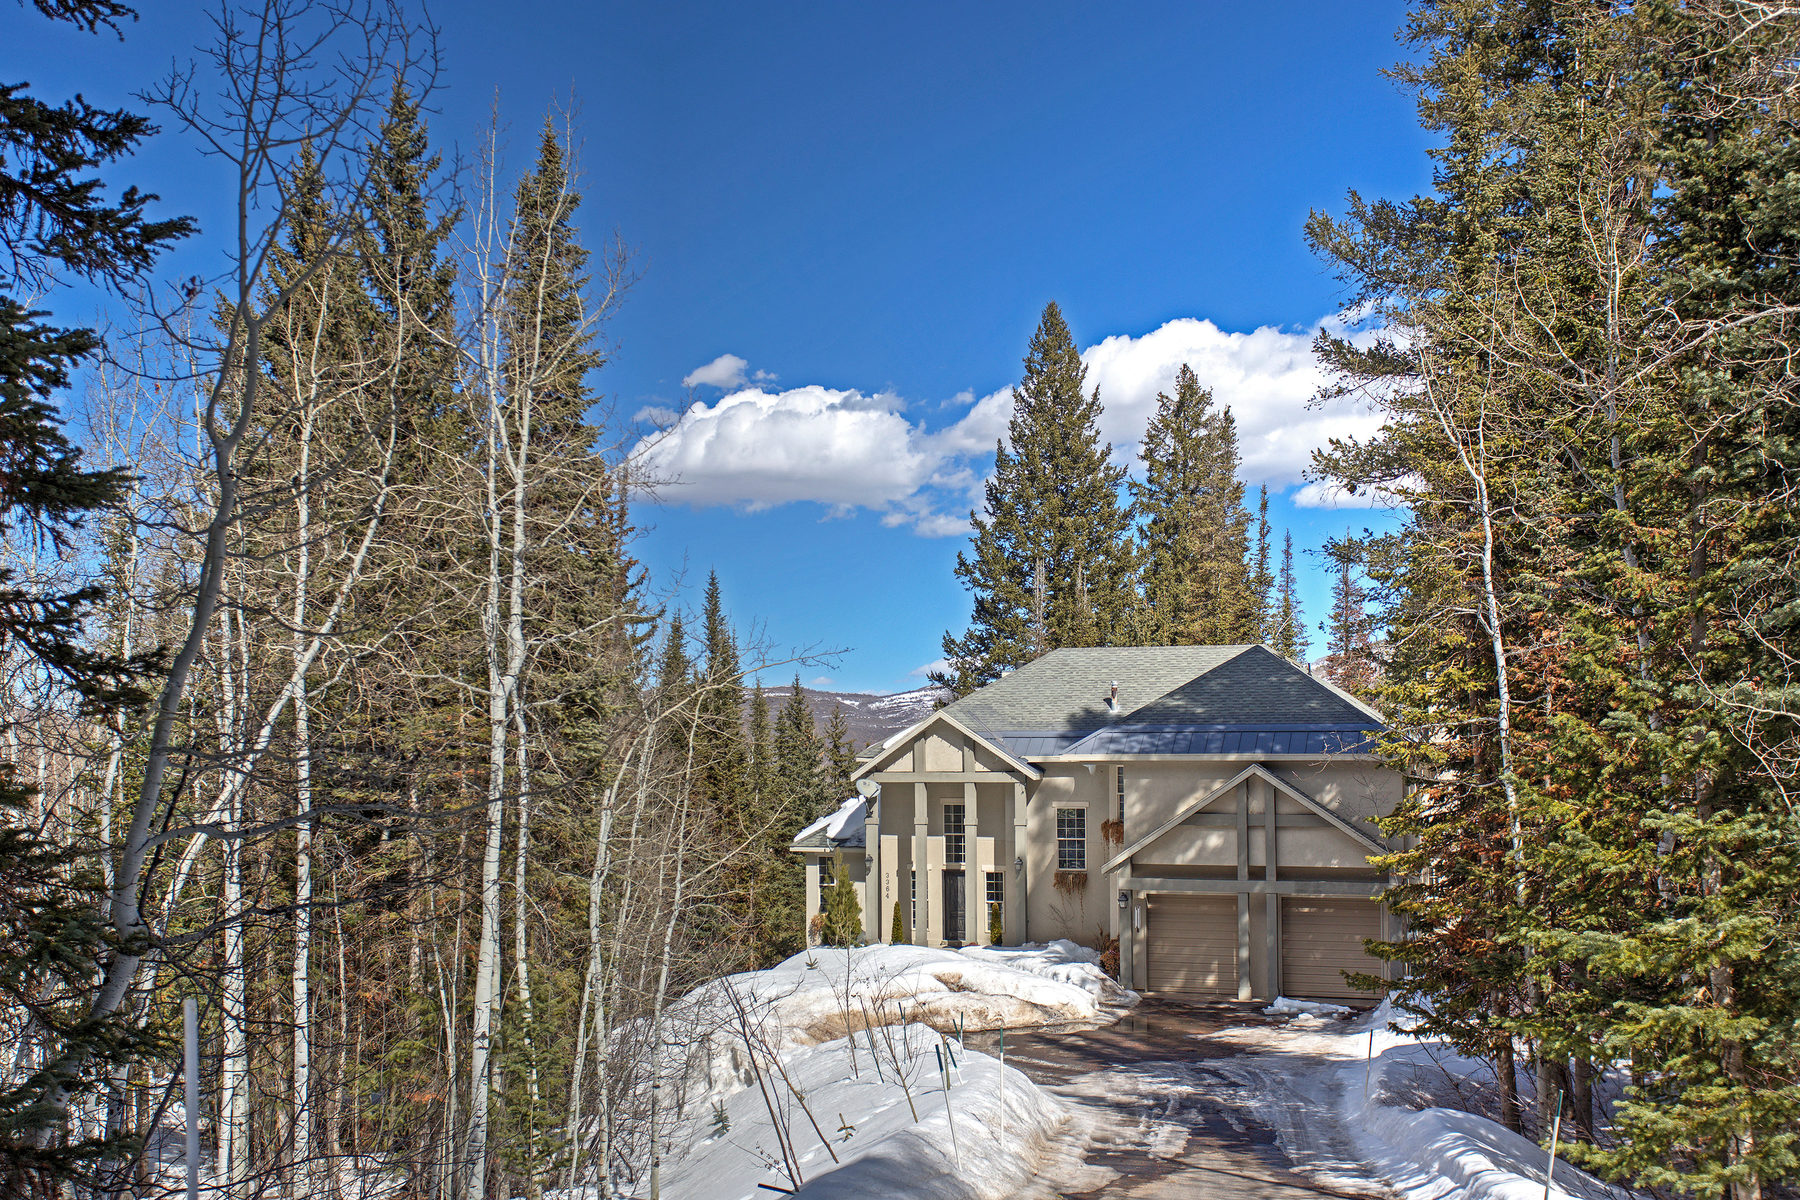 Single Family Home for Sale at Updated Mountain Masterpiece Compliments Nature 3364 Buckboard Dr Park City, Utah, 84098 United States